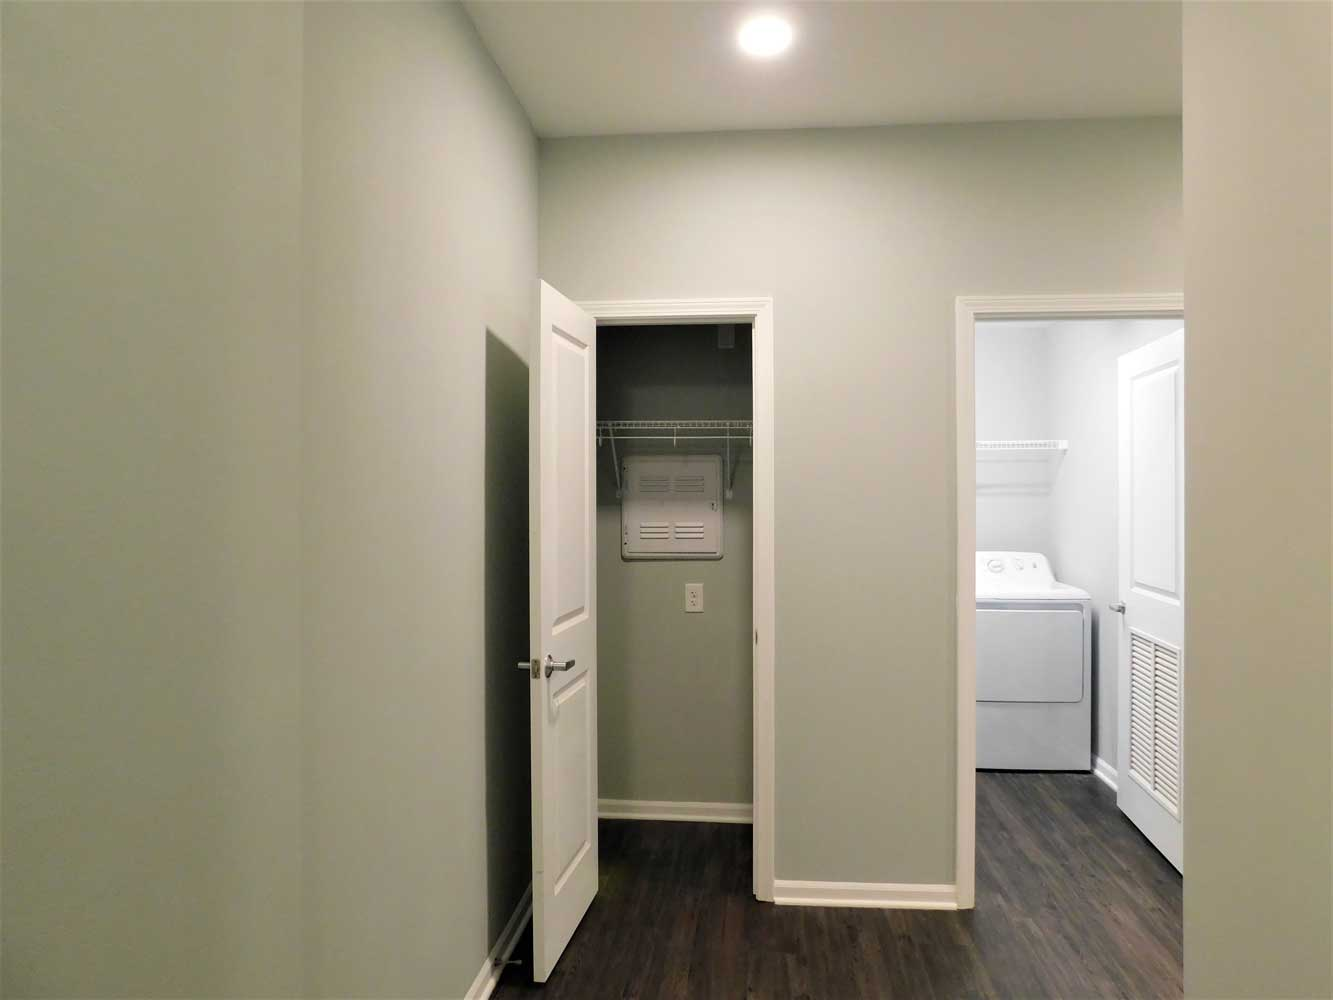 Laundry Area and Walk In Closet at Midtown Plaza Apartments in Kansas City, MO